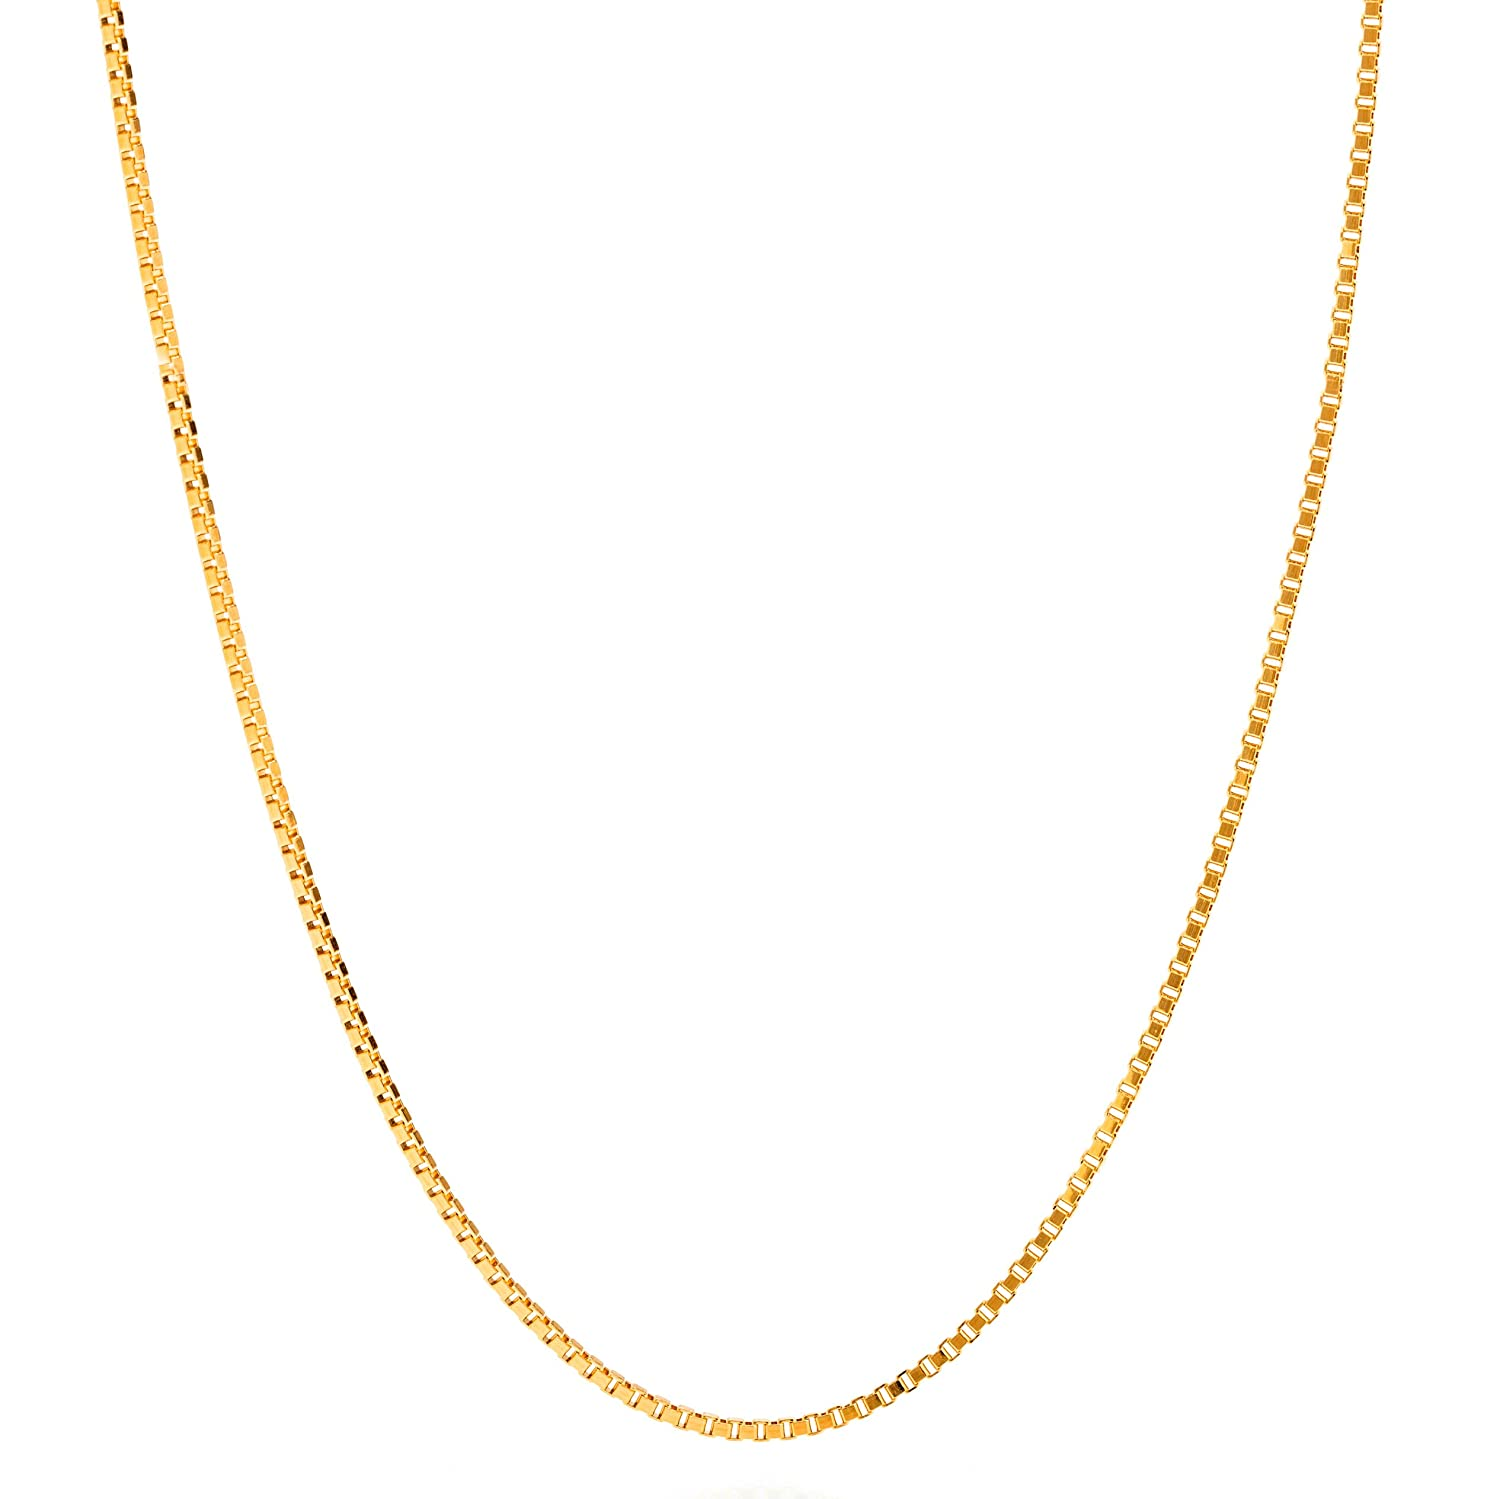 068ce29fc8 Lifetime Jewelry Gold Necklaces for Women   Men   1.4mm Box Chain Necklace    Up to 20X More 24k Real Gold Plating Than Other Necklace Chain - Pendant  ...